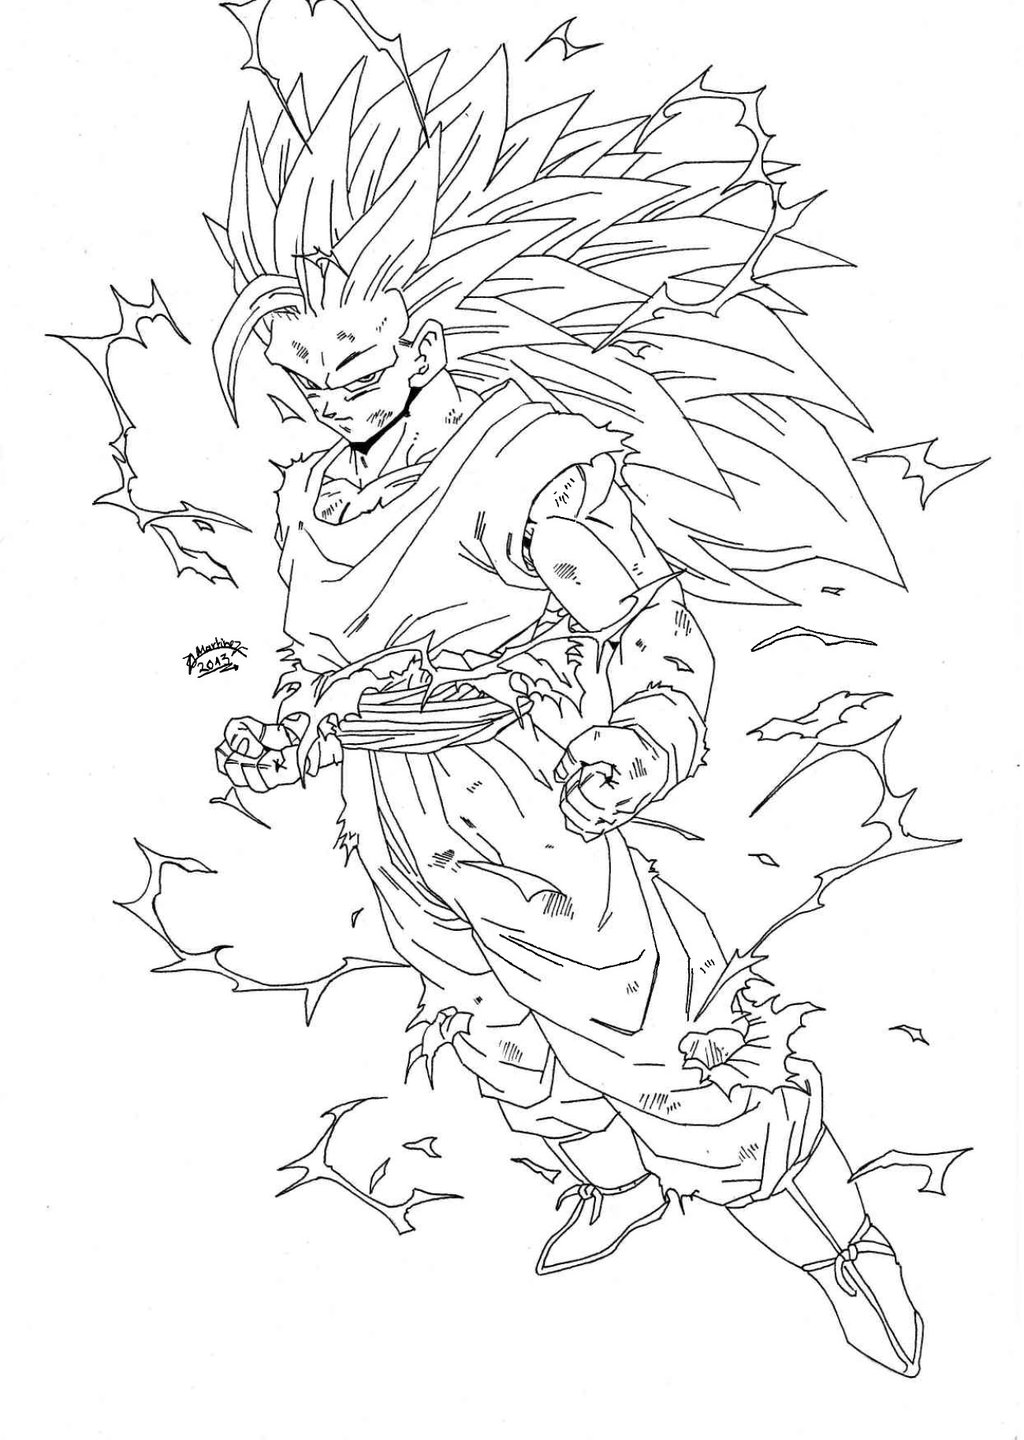 Dragonball Z Drawing at GetDrawings.com | Free for personal use ...